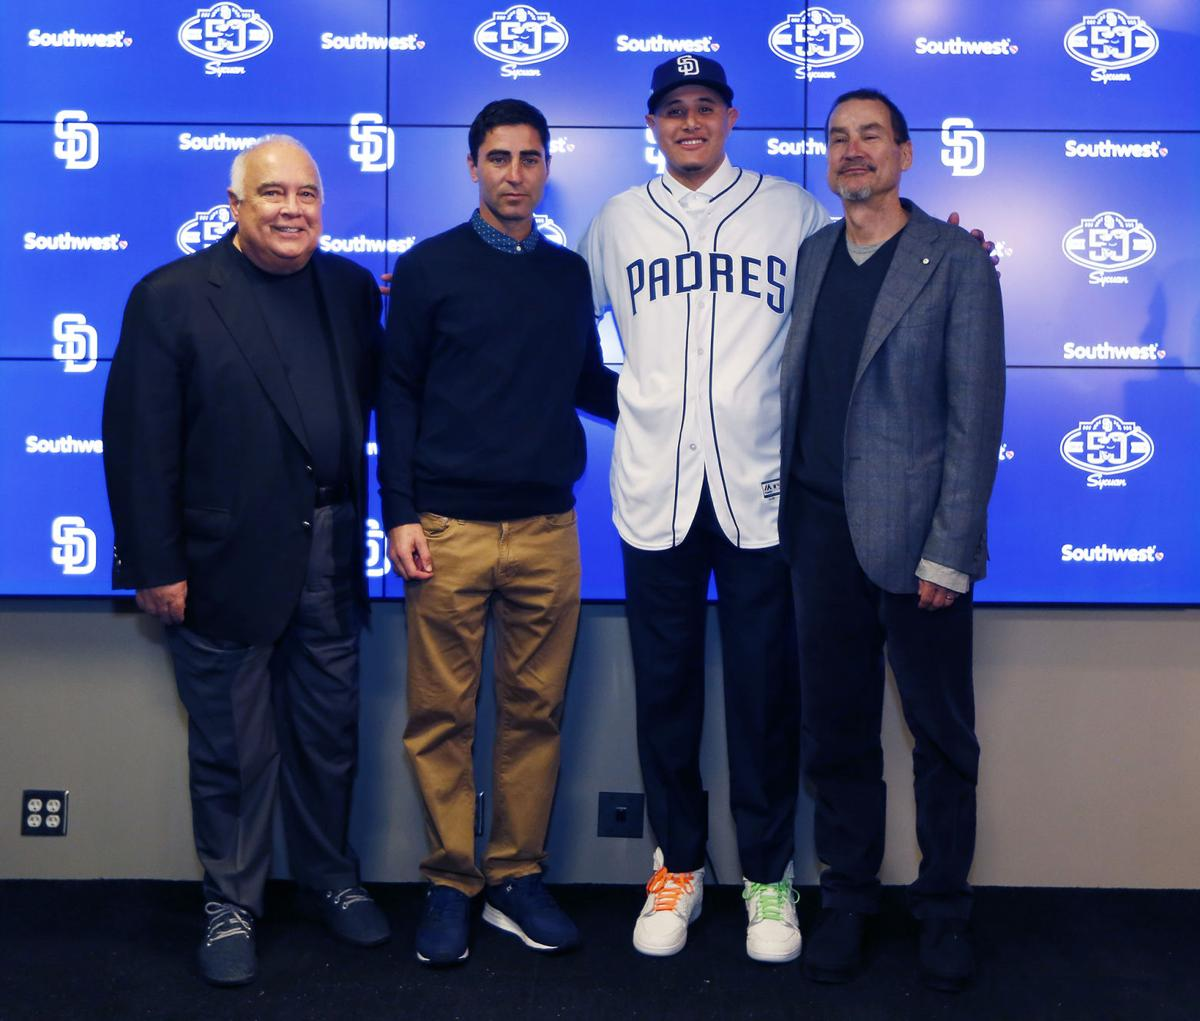 From left, San Diego Padres executive chairman Ron Fowler, general manager A.J. Preller, infielder Manny Machado and general partner Peter Seidler take a photo after a news conference on Friday, Feb. 22, 2019, in Peoria, Ariz. Machado agreed to a 10-year, $300 million contract with the Padres.